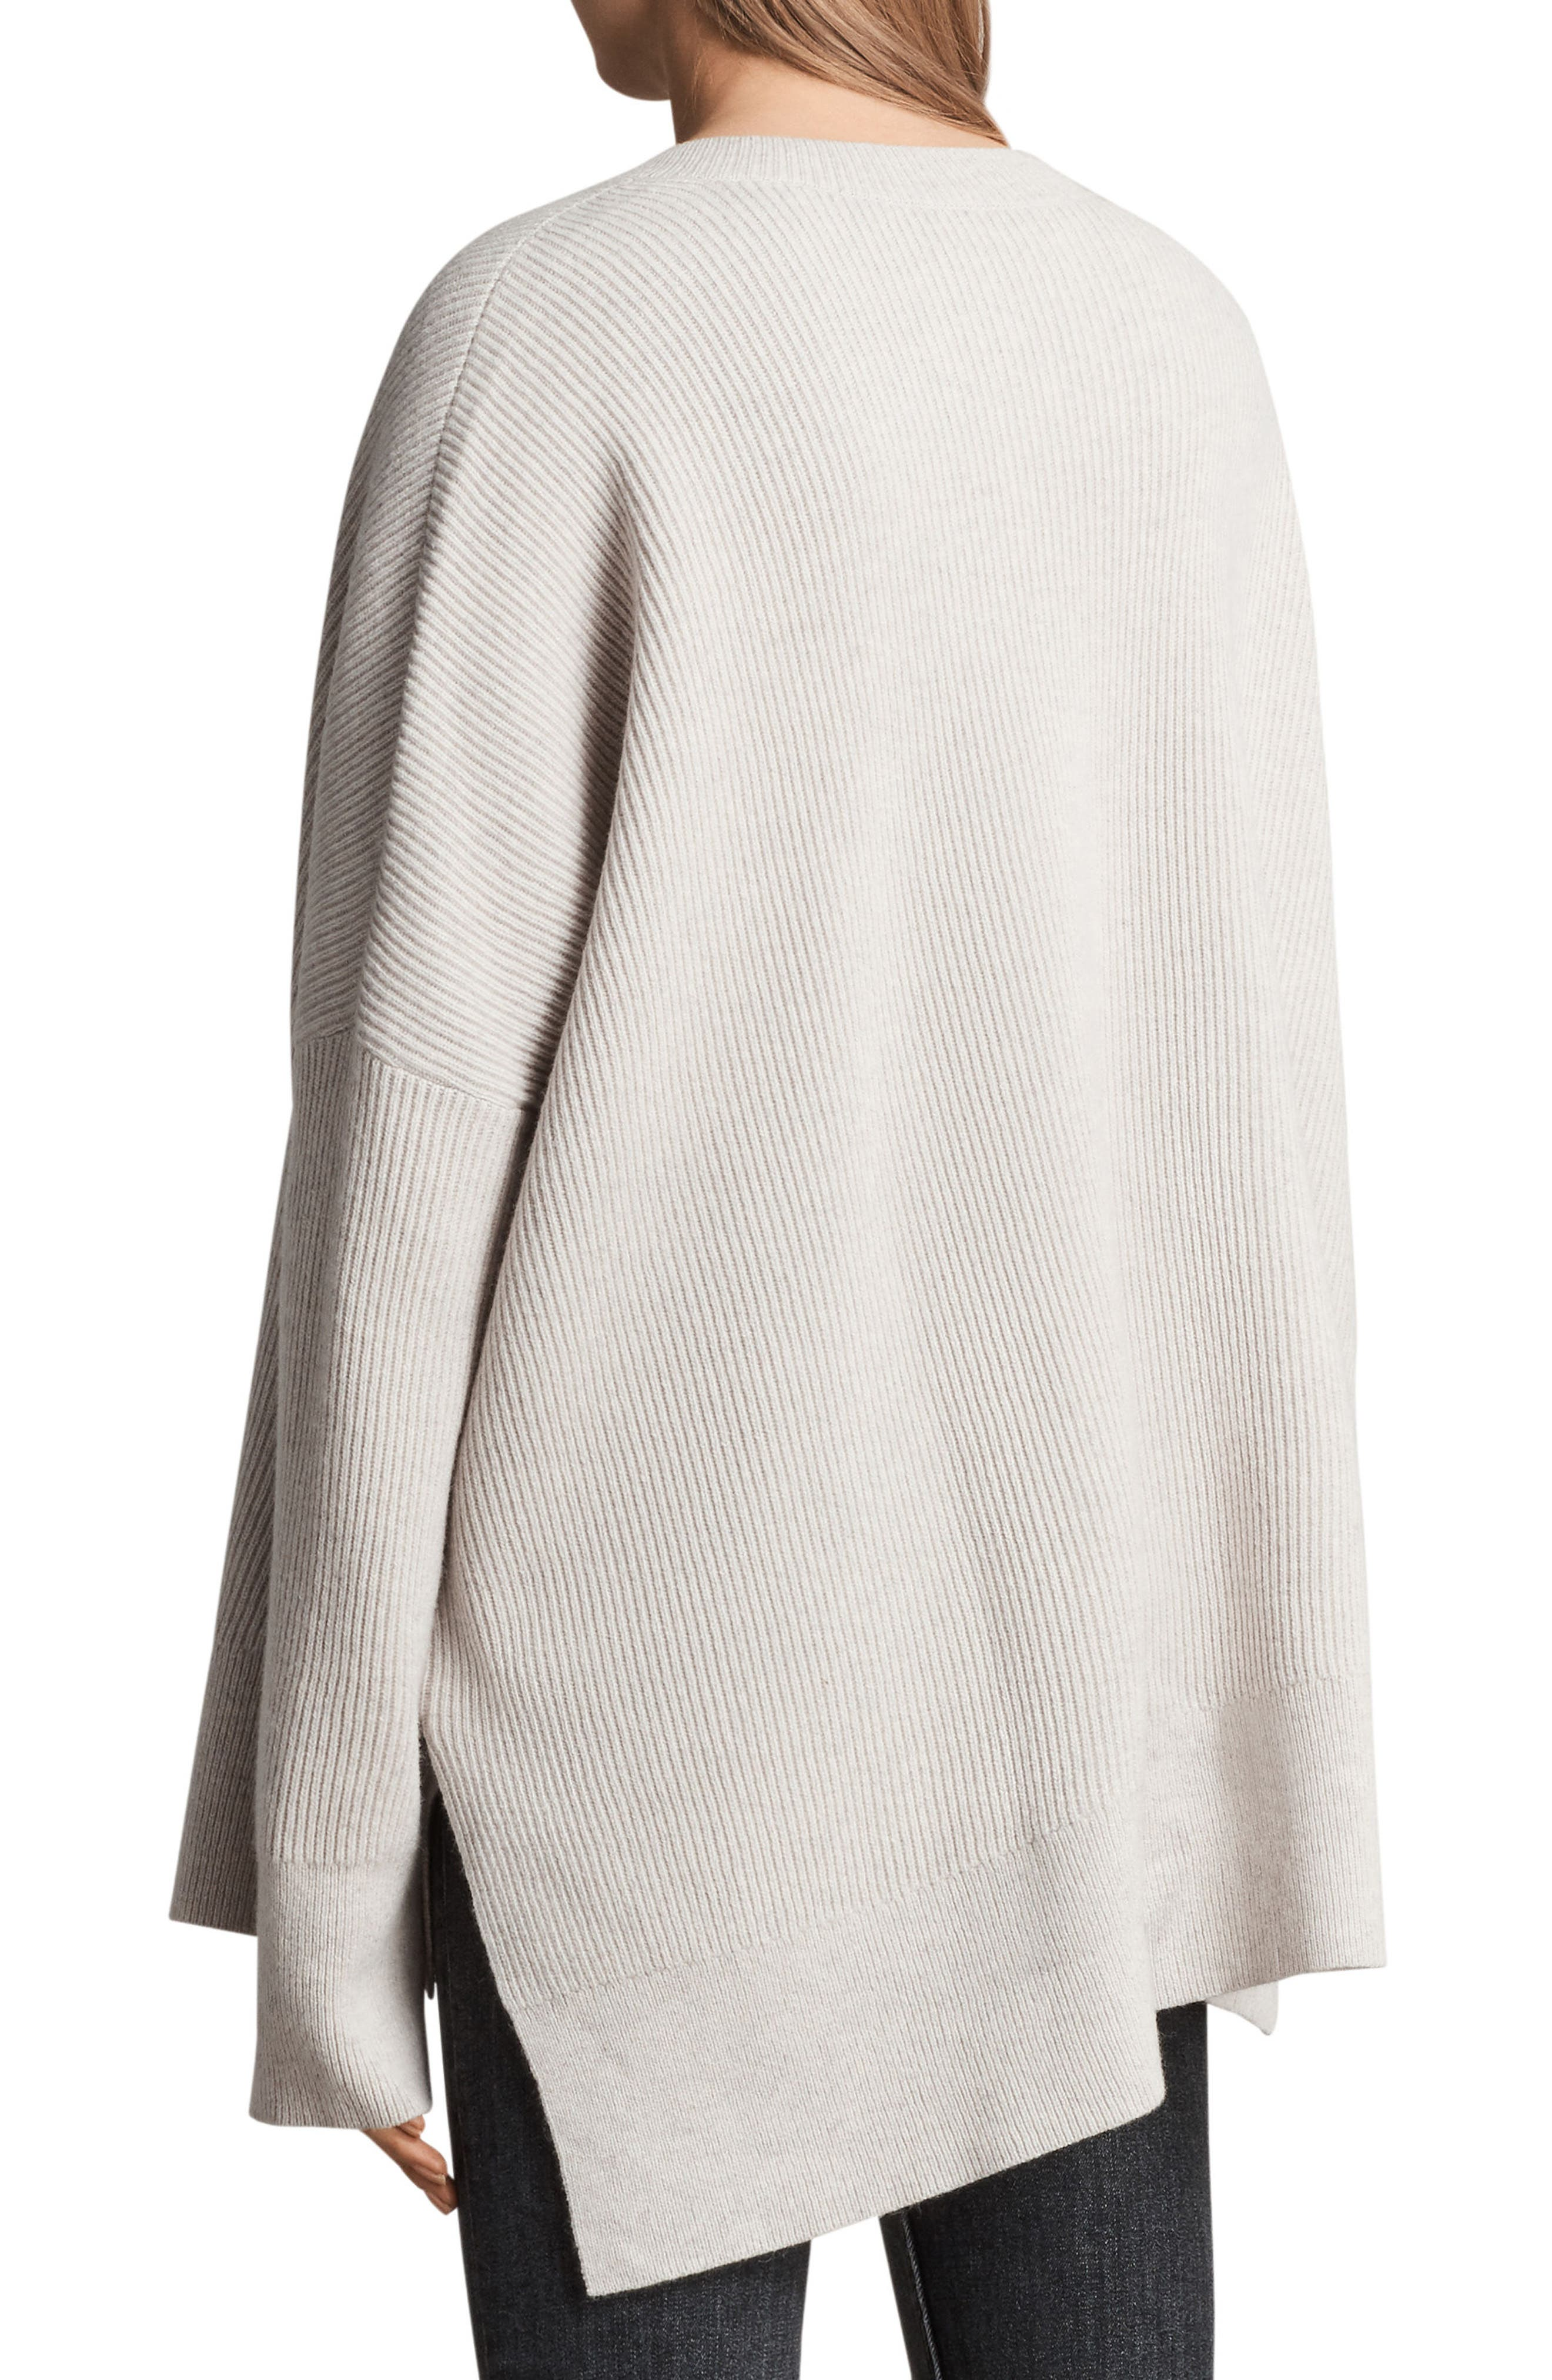 Able Laced Sweater,                             Alternate thumbnail 3, color,                             Porcelain White